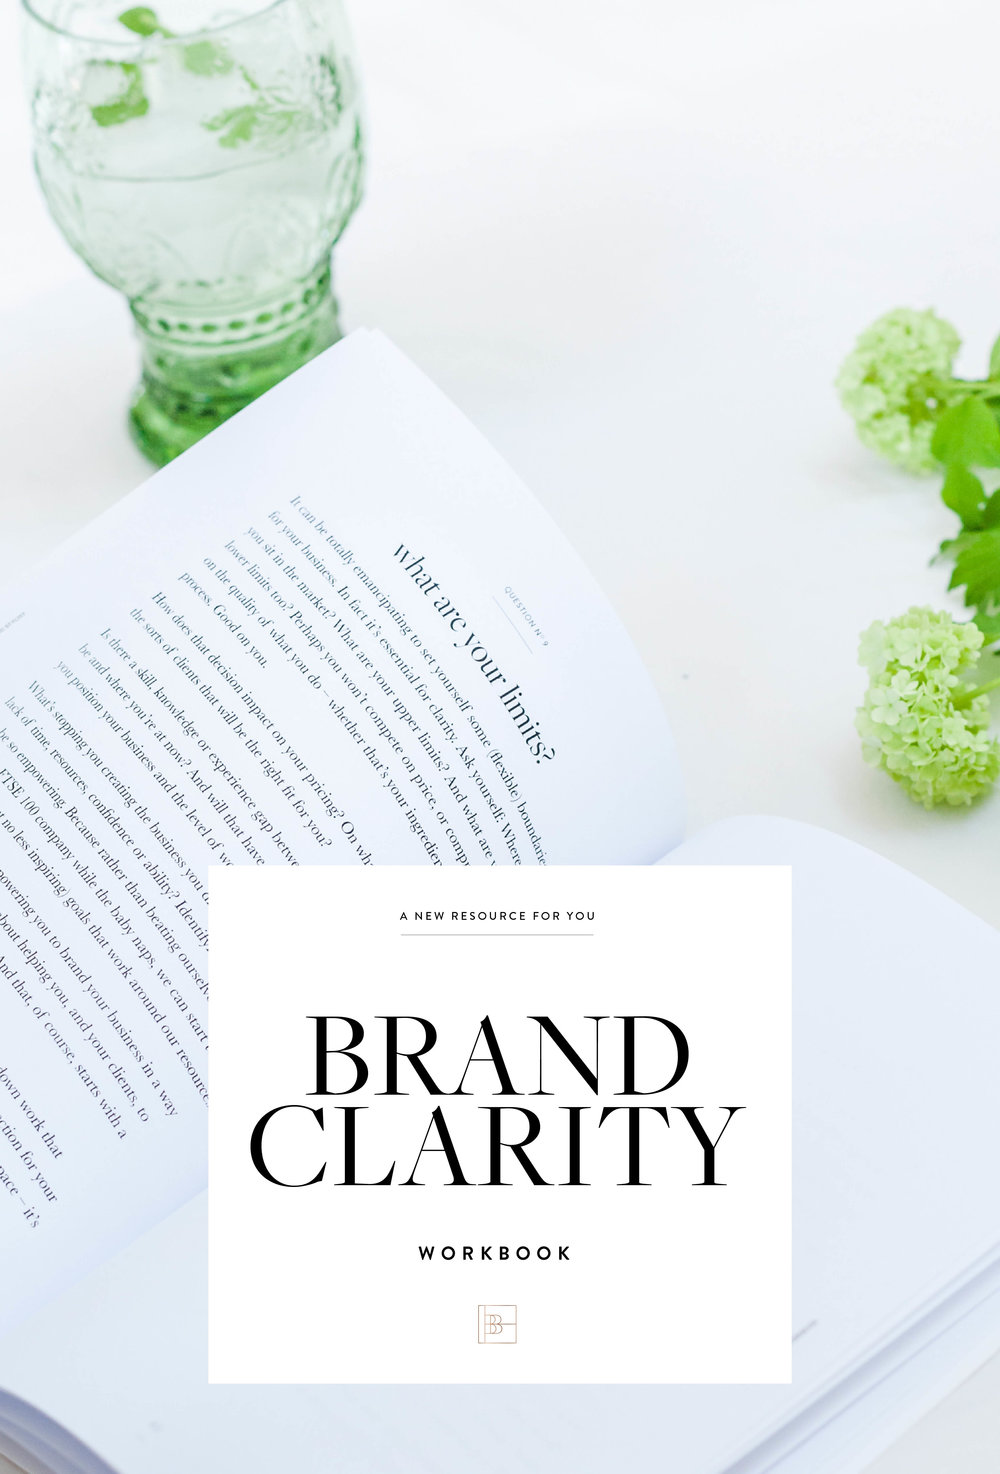 BRAND-CLARITY-WORKBOOK-BLOG.jpg